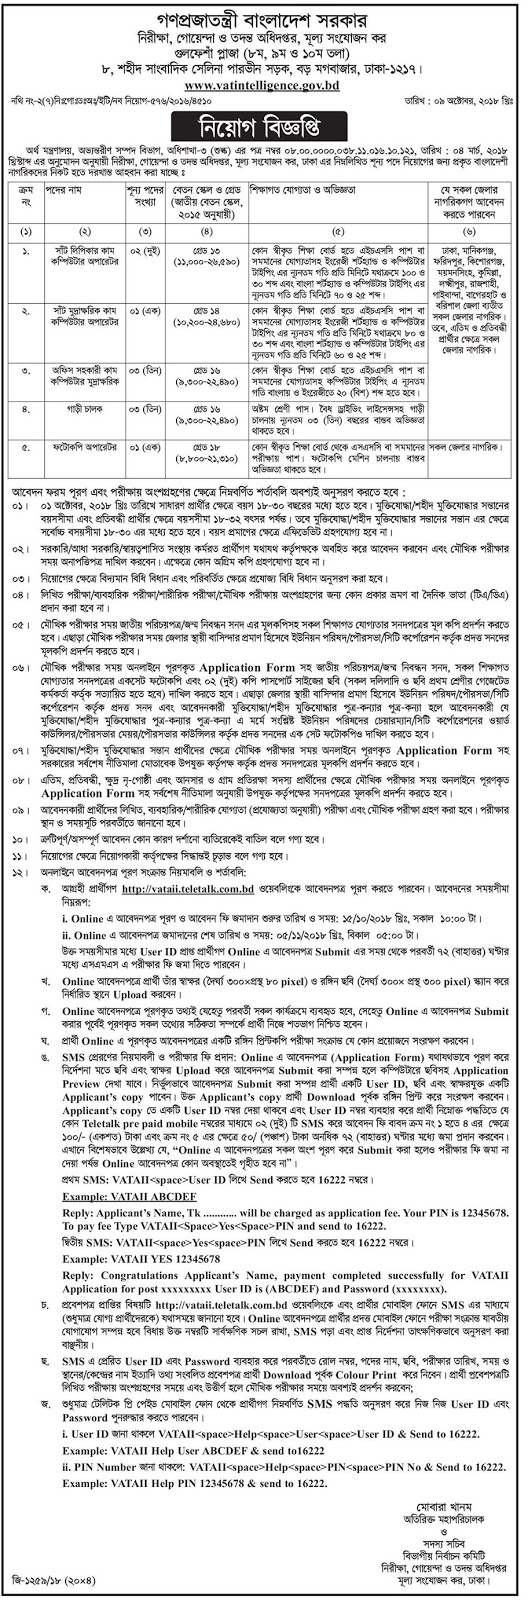 Directorate of Audit, Intelligence and Investigation Job Circular 2018